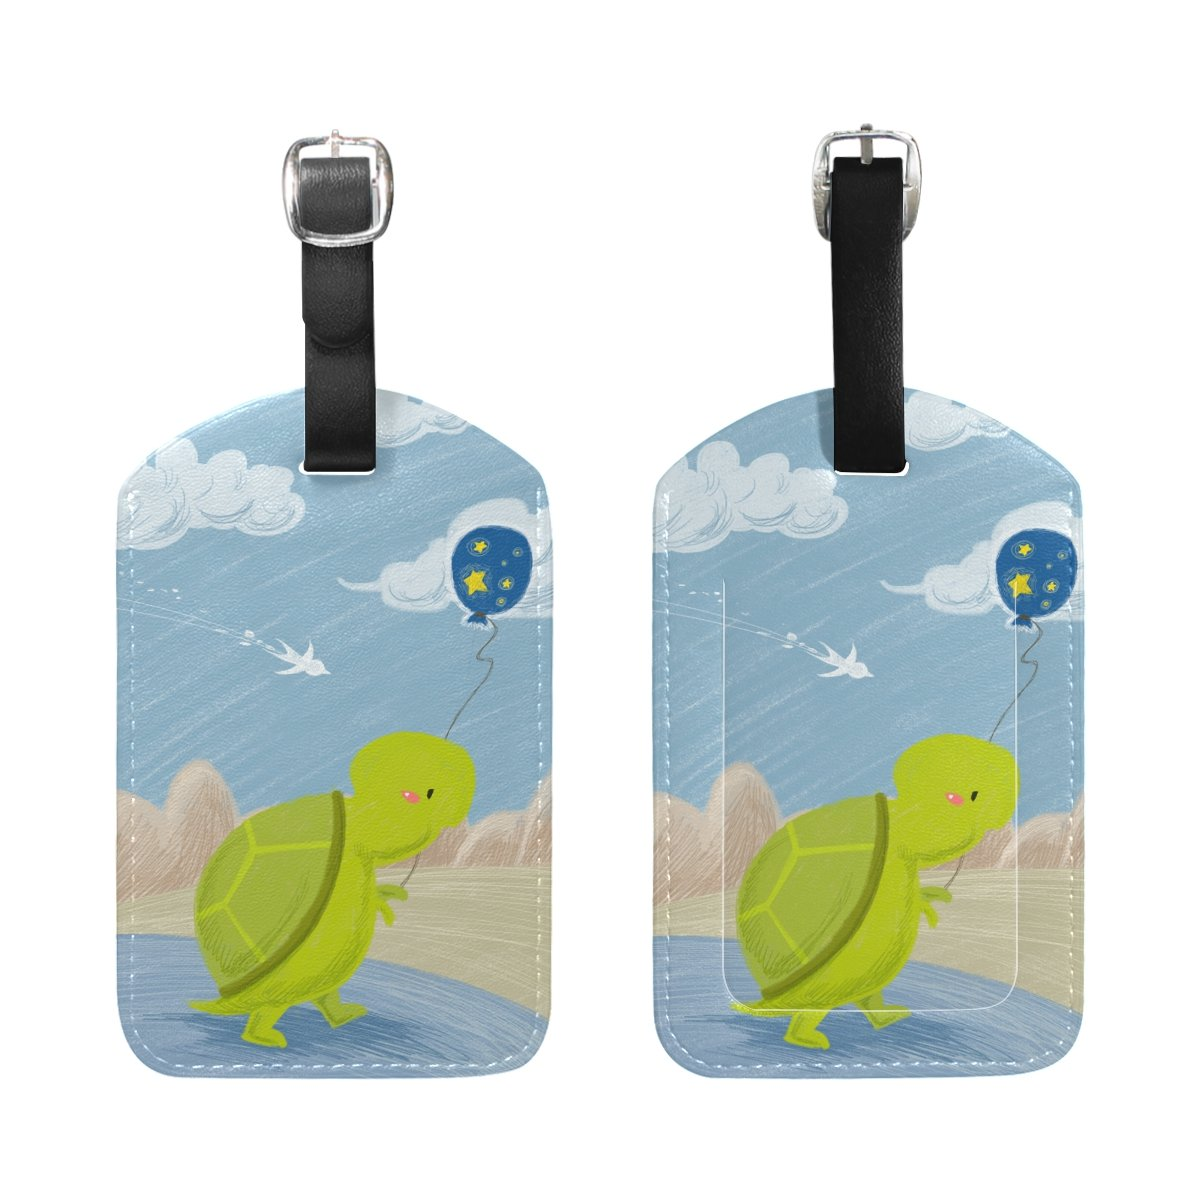 1Pcs Saobao Travel Luggage Tag Tortoise PU Leather Baggage Suitcase Travel ID Bag Tag